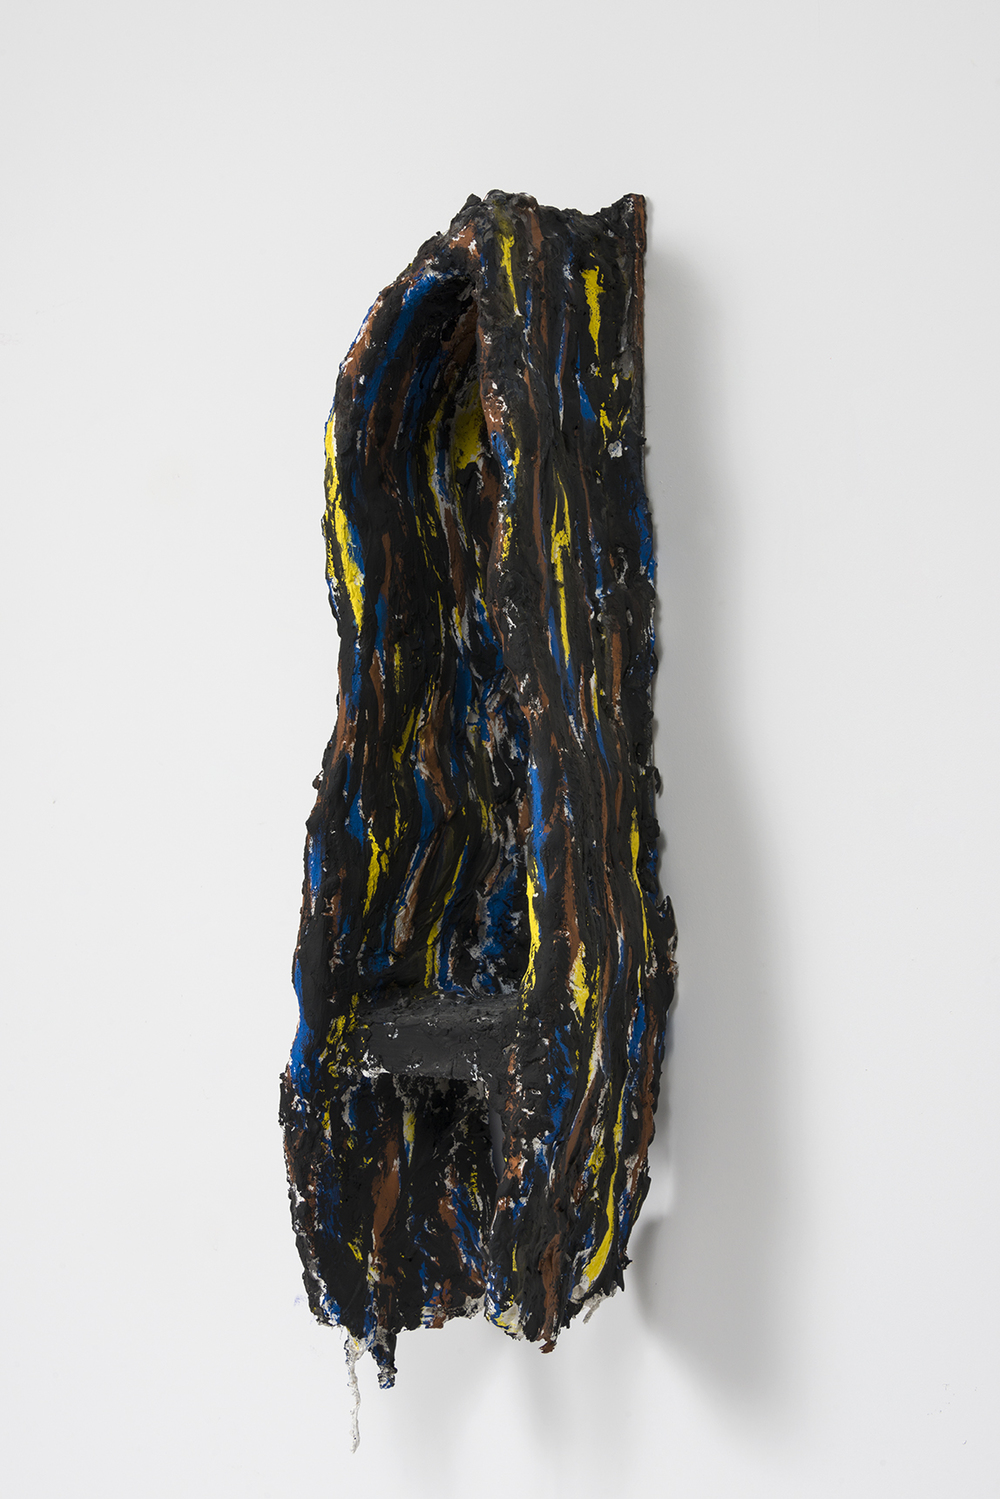 Florian Morlat - Untitled (Cave 6) - 2015 - Wood, Plaster, burlap, Chicken wire, Oil Enamel - 32 x 9 x 9""